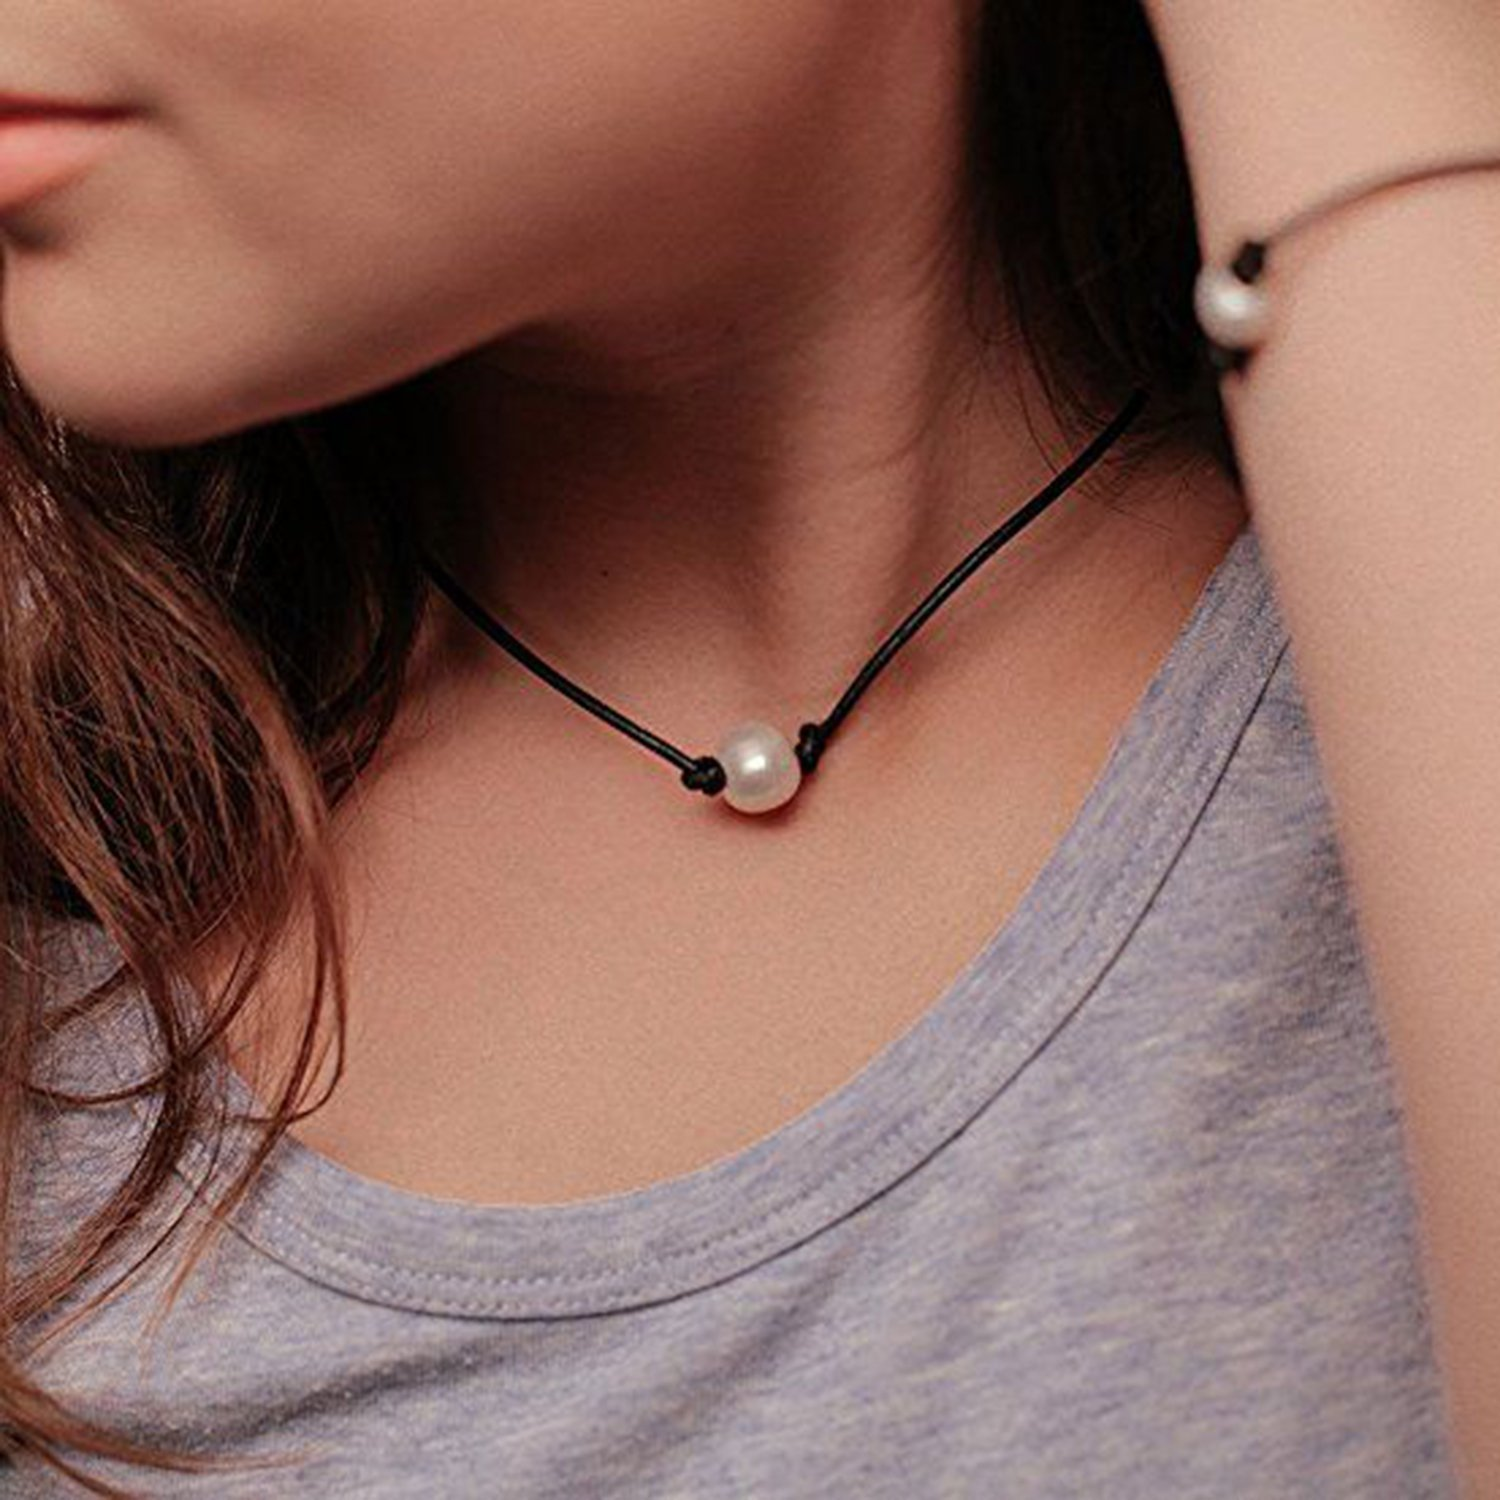 USA Annabel 3PCS Pearl Choker Leather Handmade Necklace for Women Jewelry Girls, Package Including Necklace, Bracelet and Earrings by USA Annabel (Image #4)